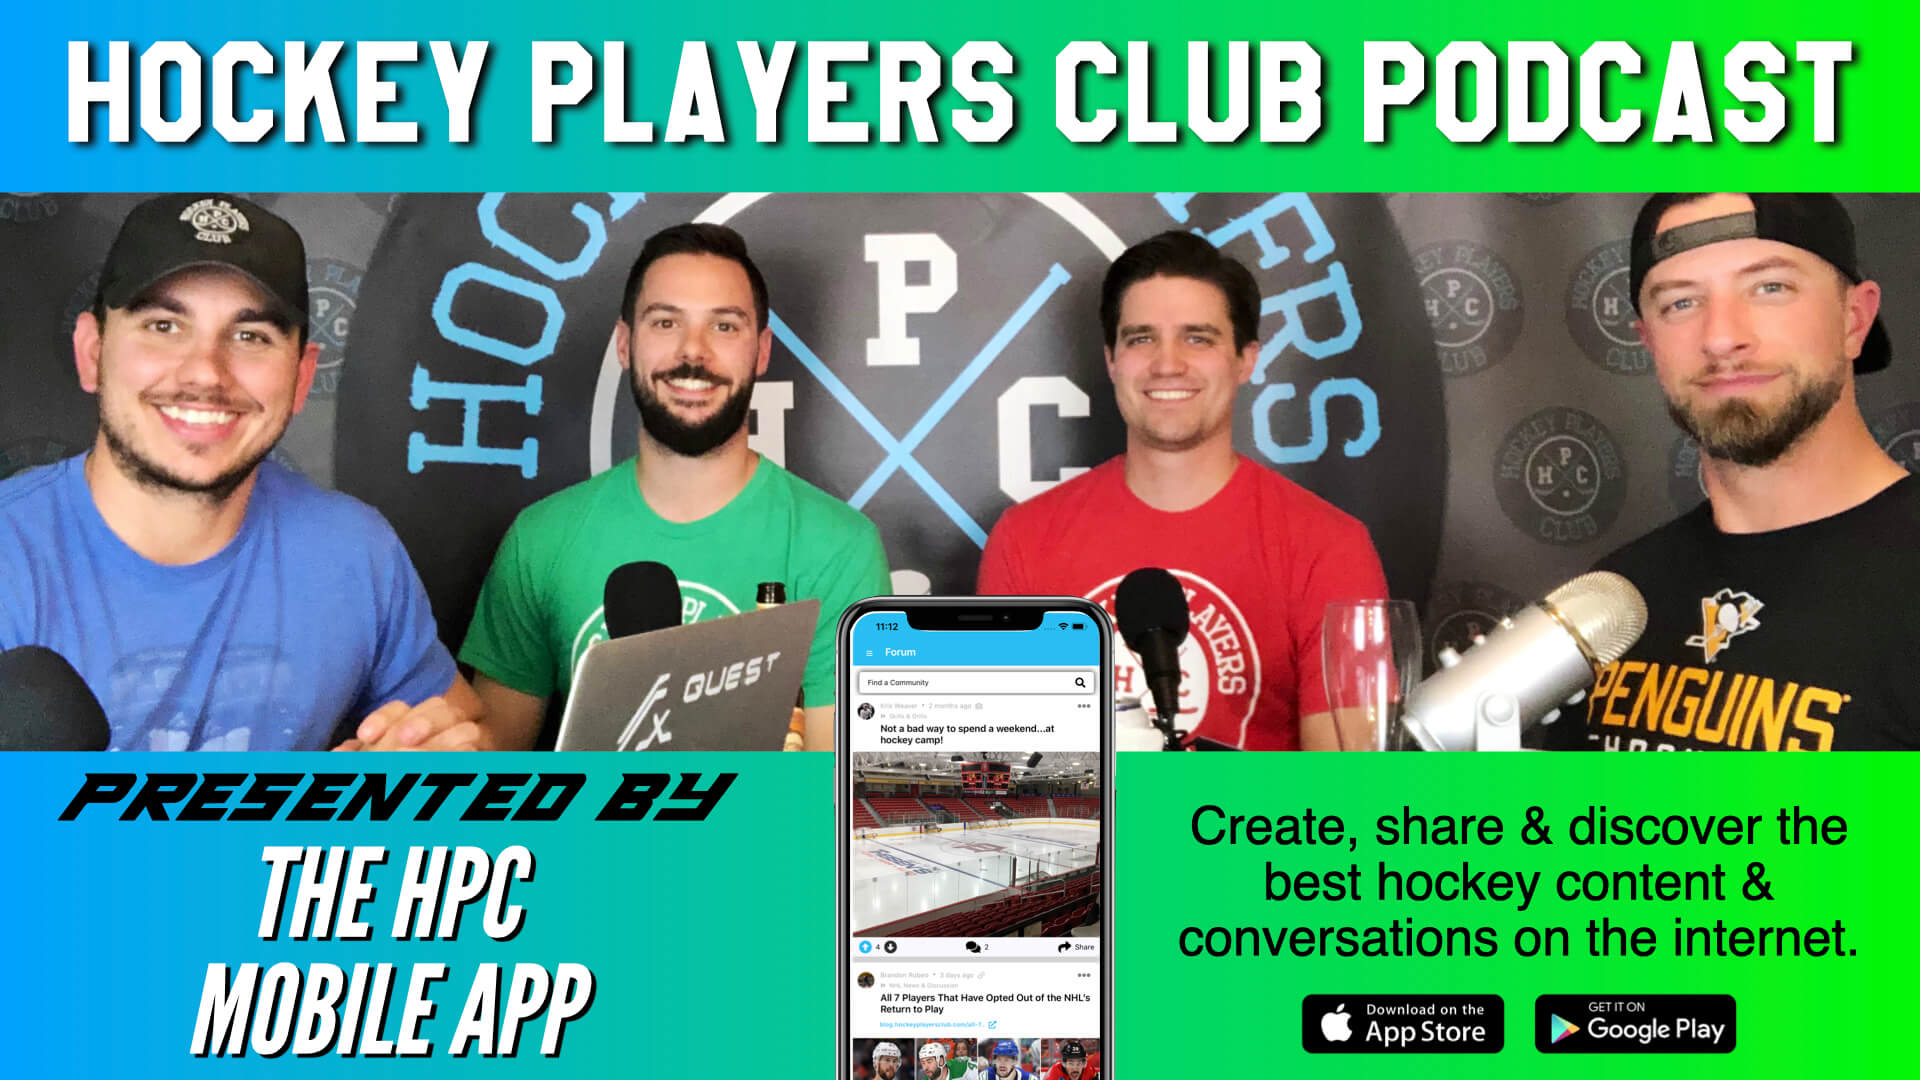 Hockey Players Club Podcast Episode 57: The best hockey talk on the internet.